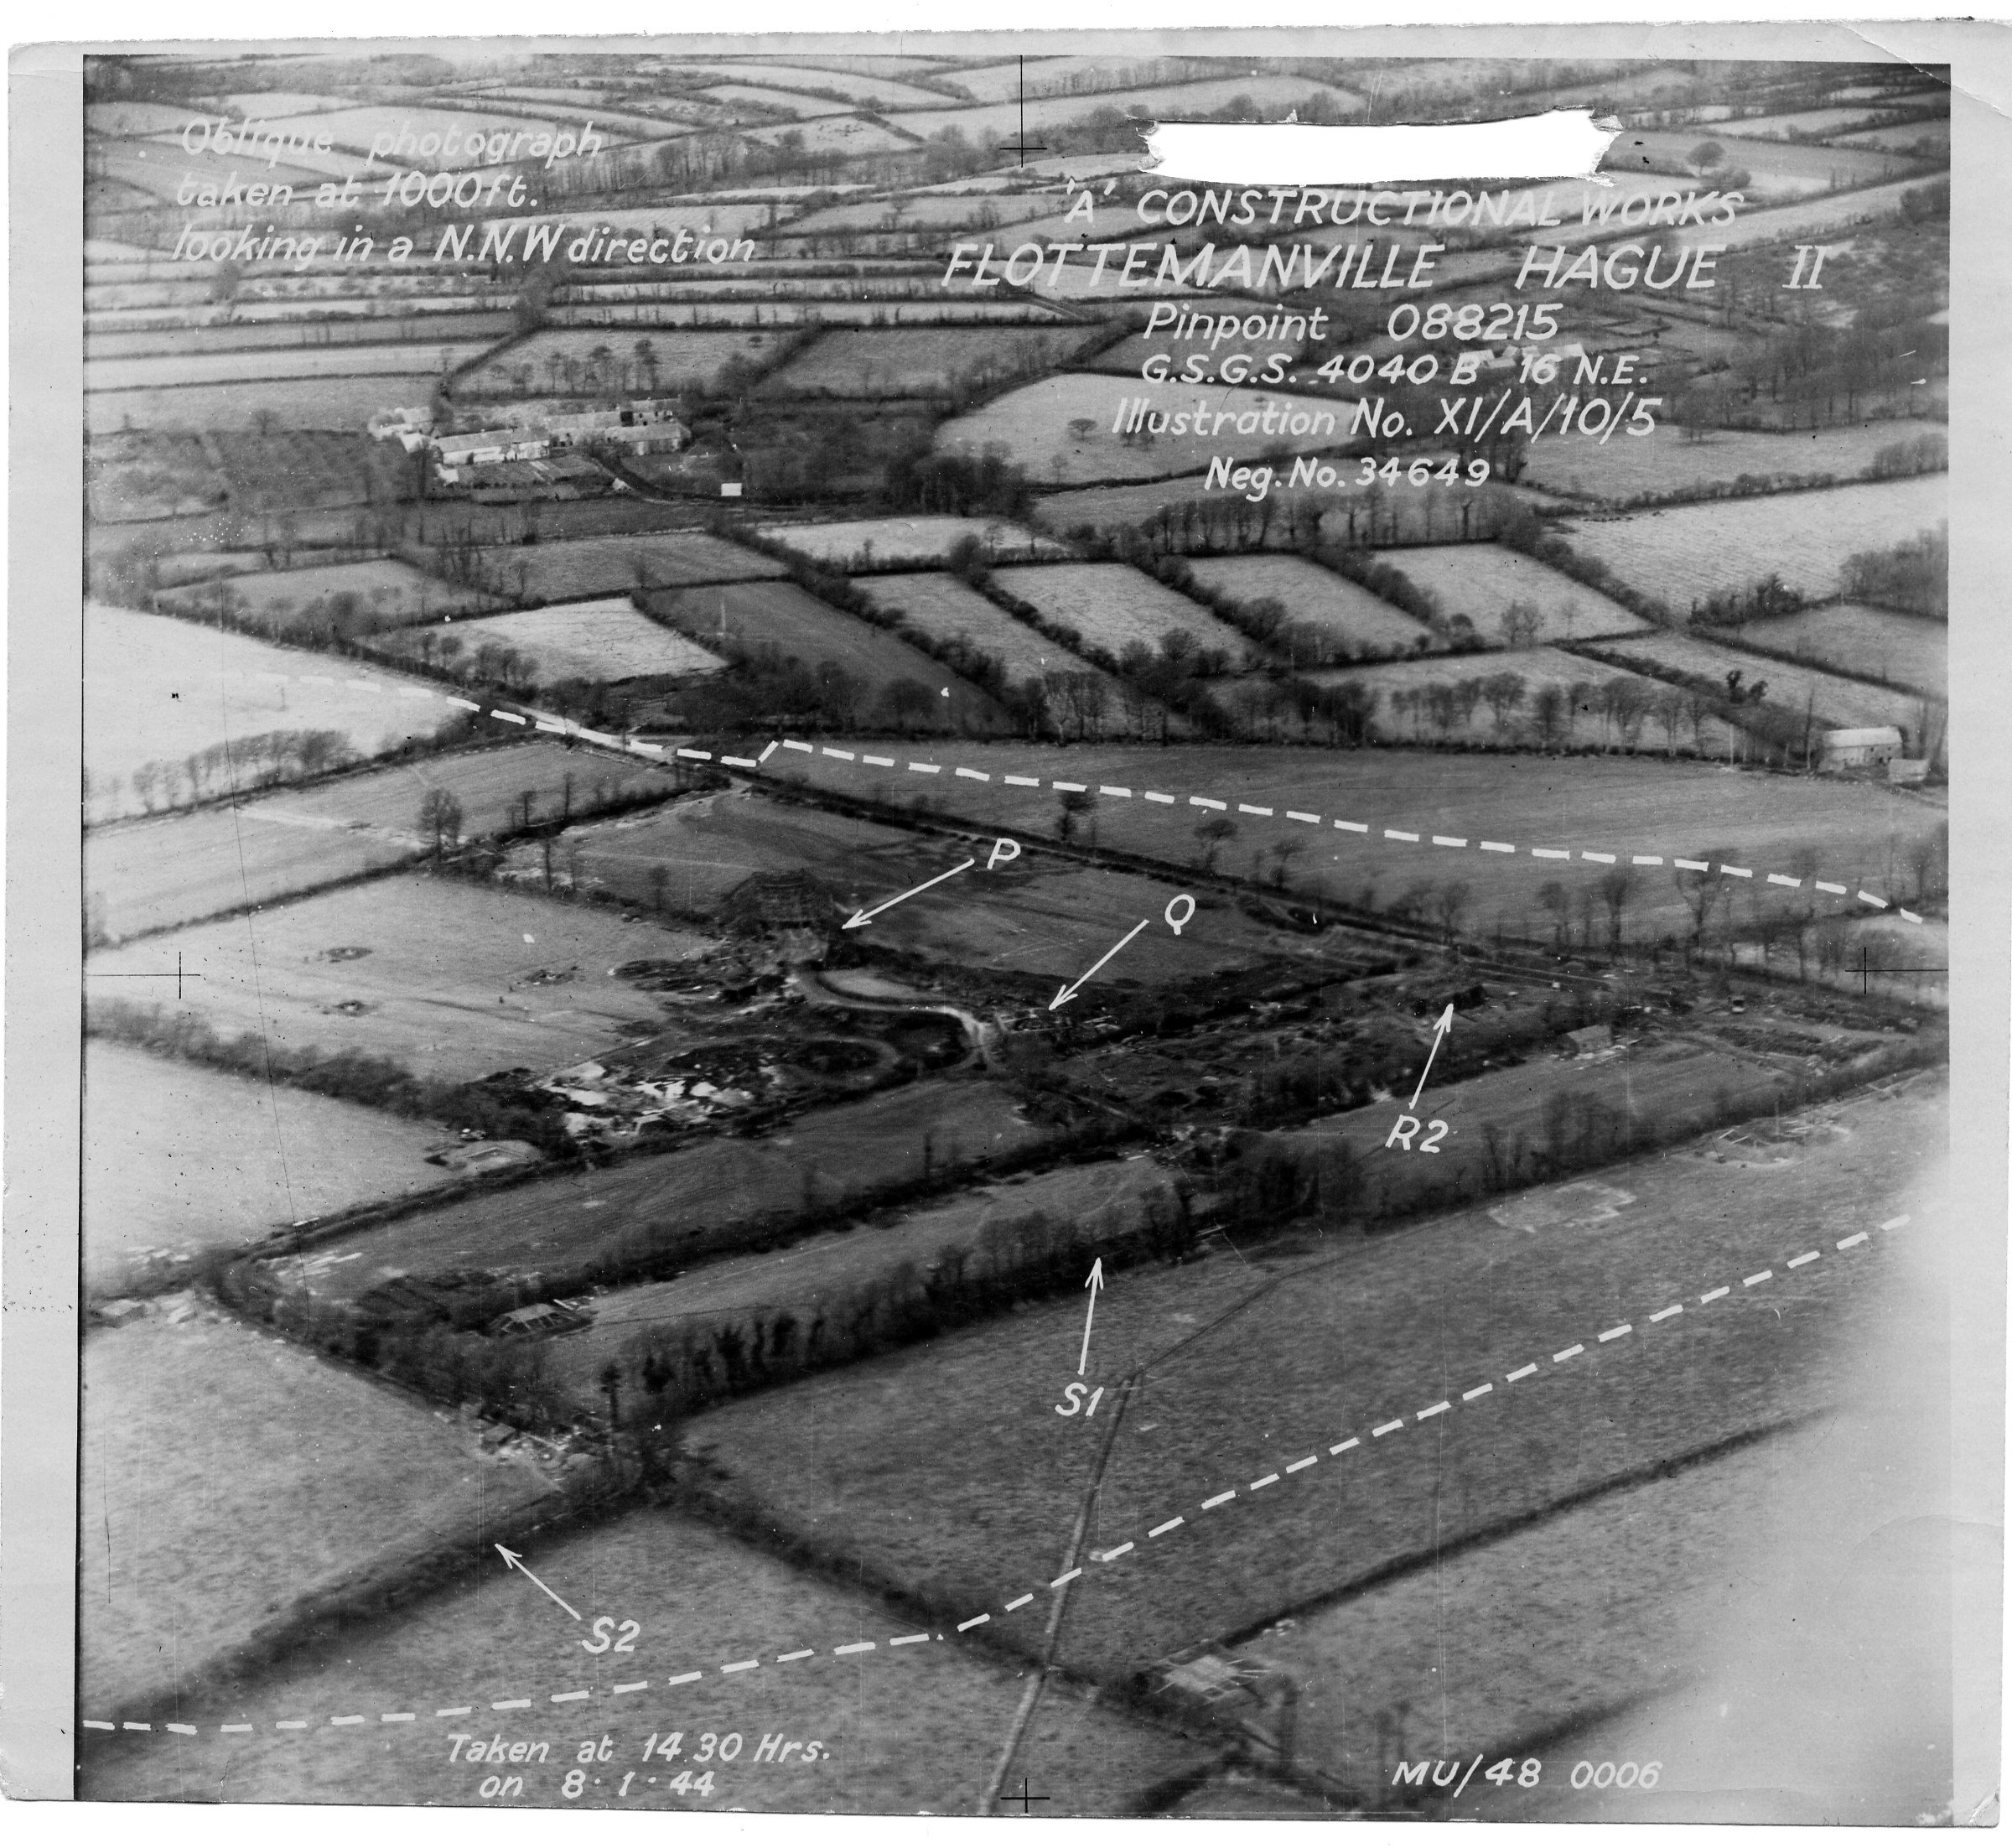 USAAAF 7PG22FS aerial recon photo to Flottemanville Hague V Weapons Noball France July 7 1944 01